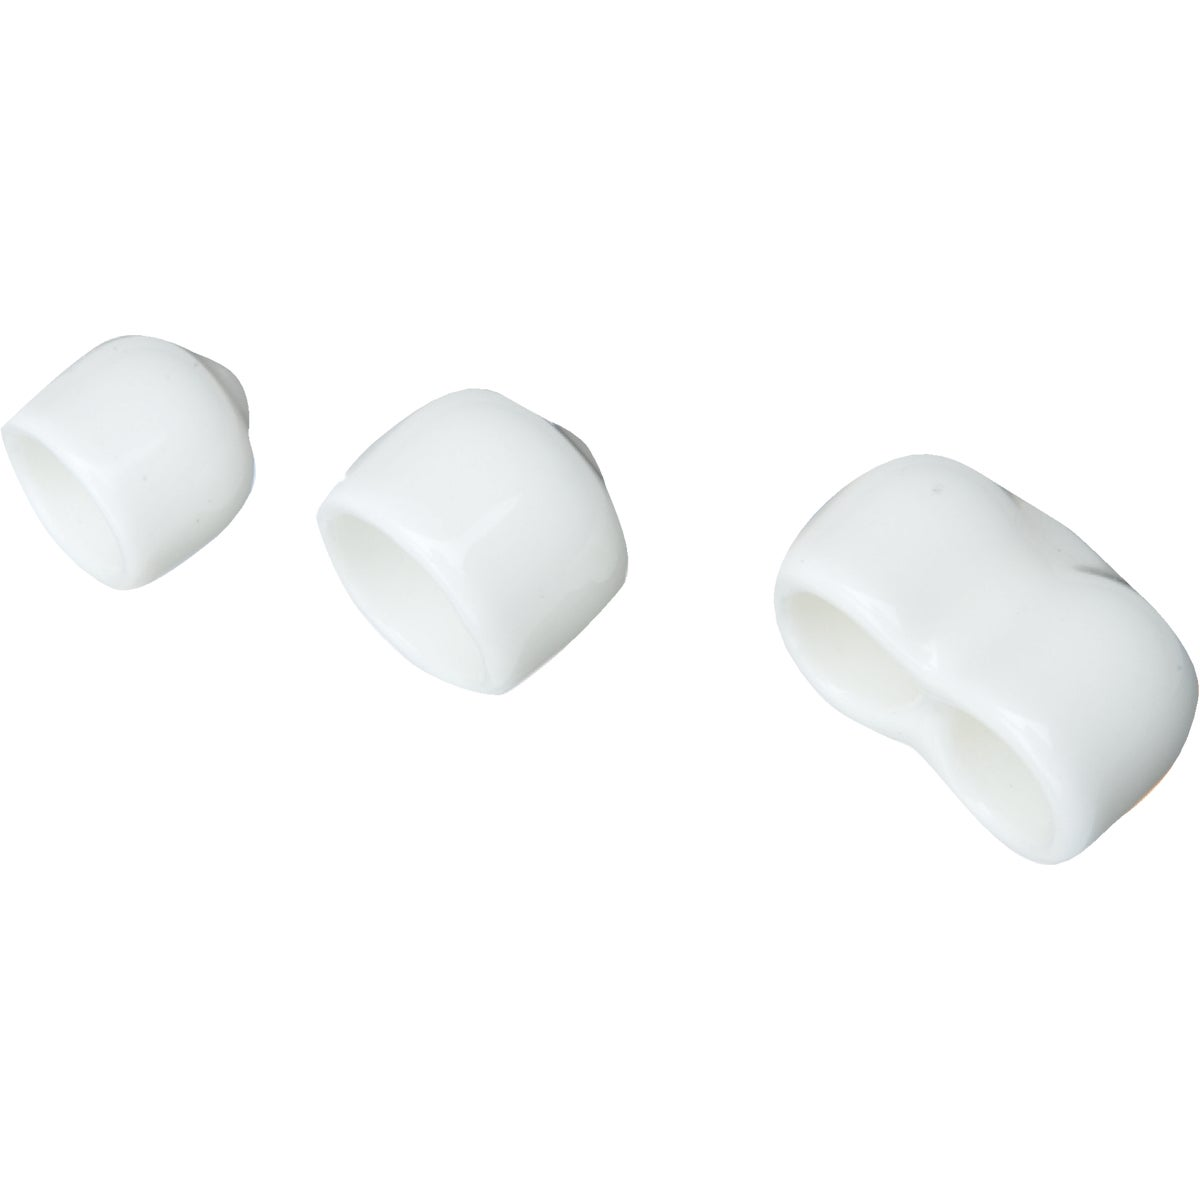 WHITE END CAPS - 7913660011 by Schulte Corp